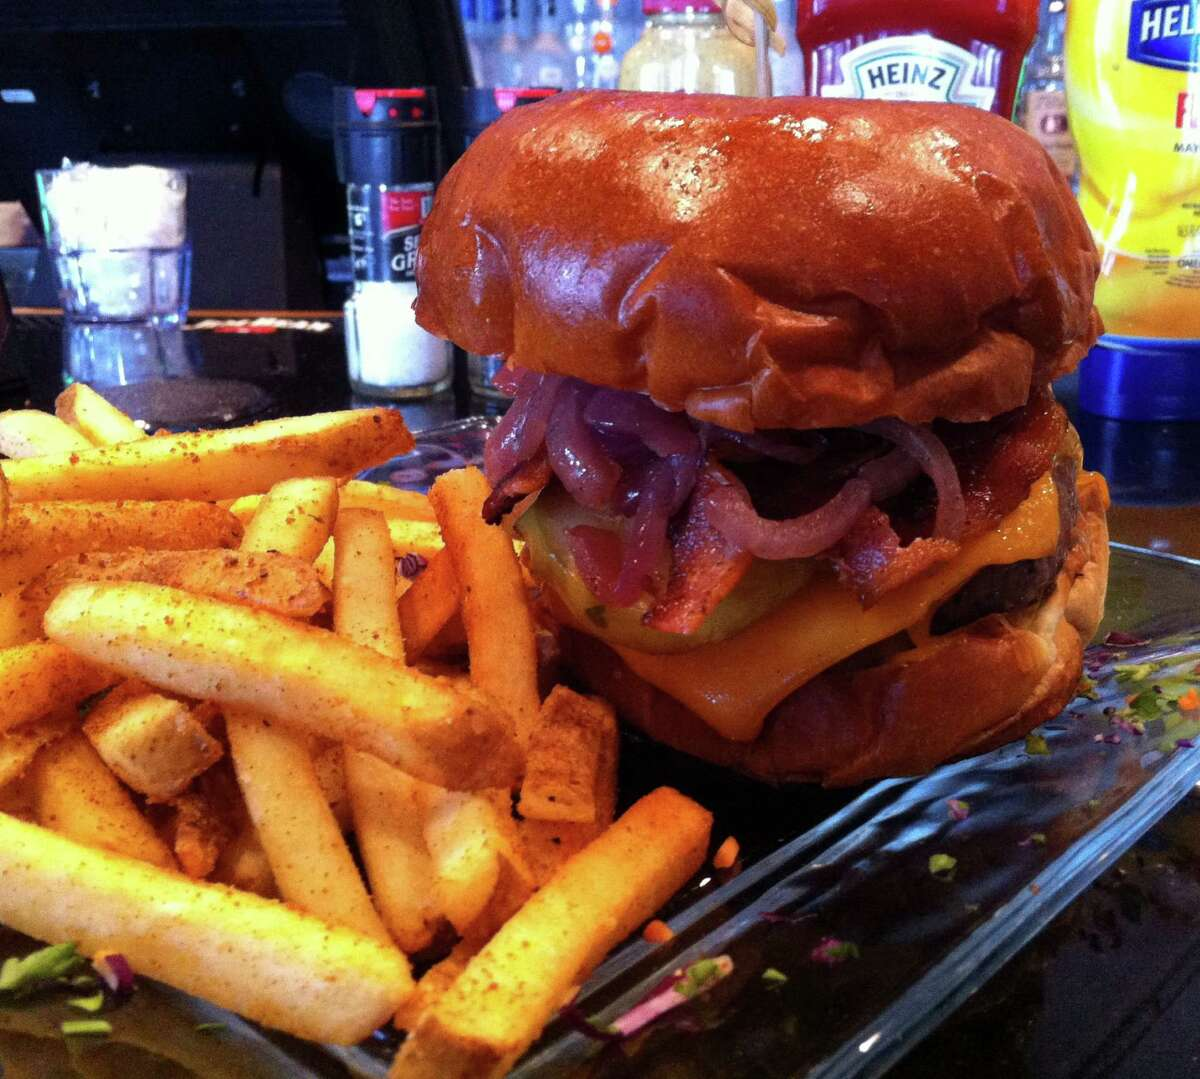 The Chopping Block serves a variety of signature burgers, such as the Granny Smith ($12.25).